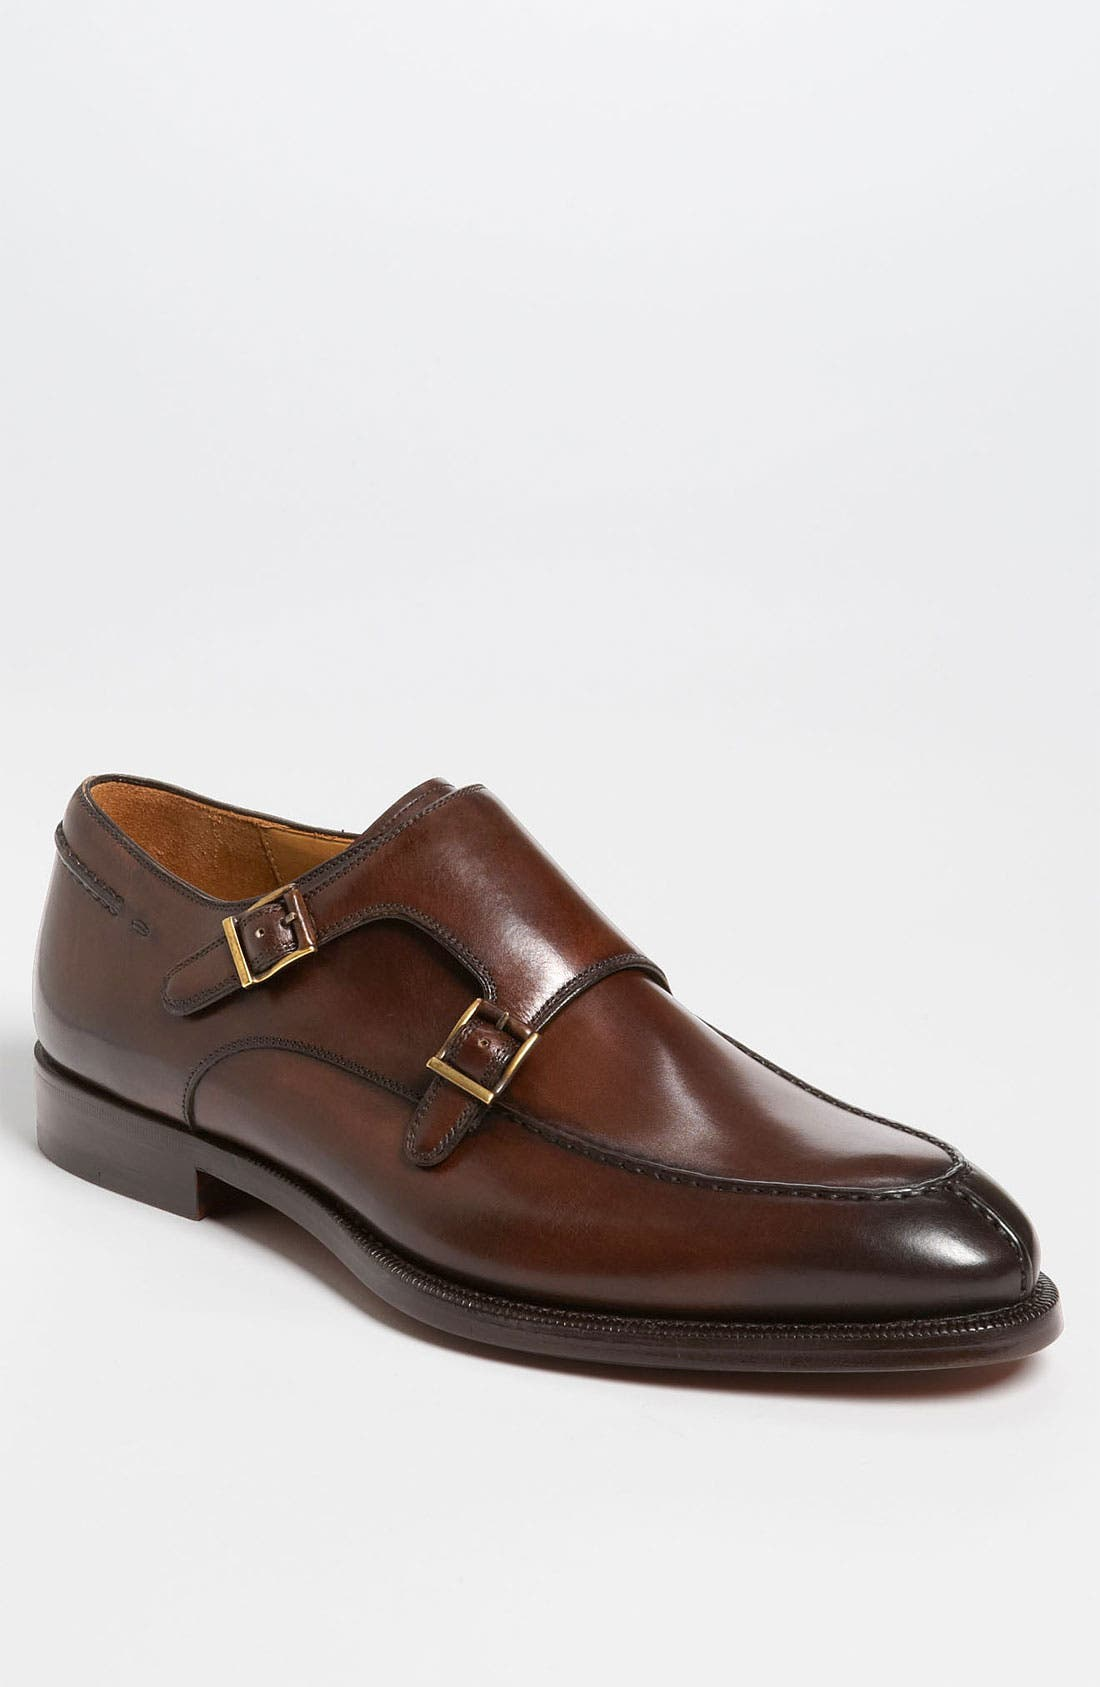 Main Image - Magnanni 'Turia' Double Monk Strap Slip-On